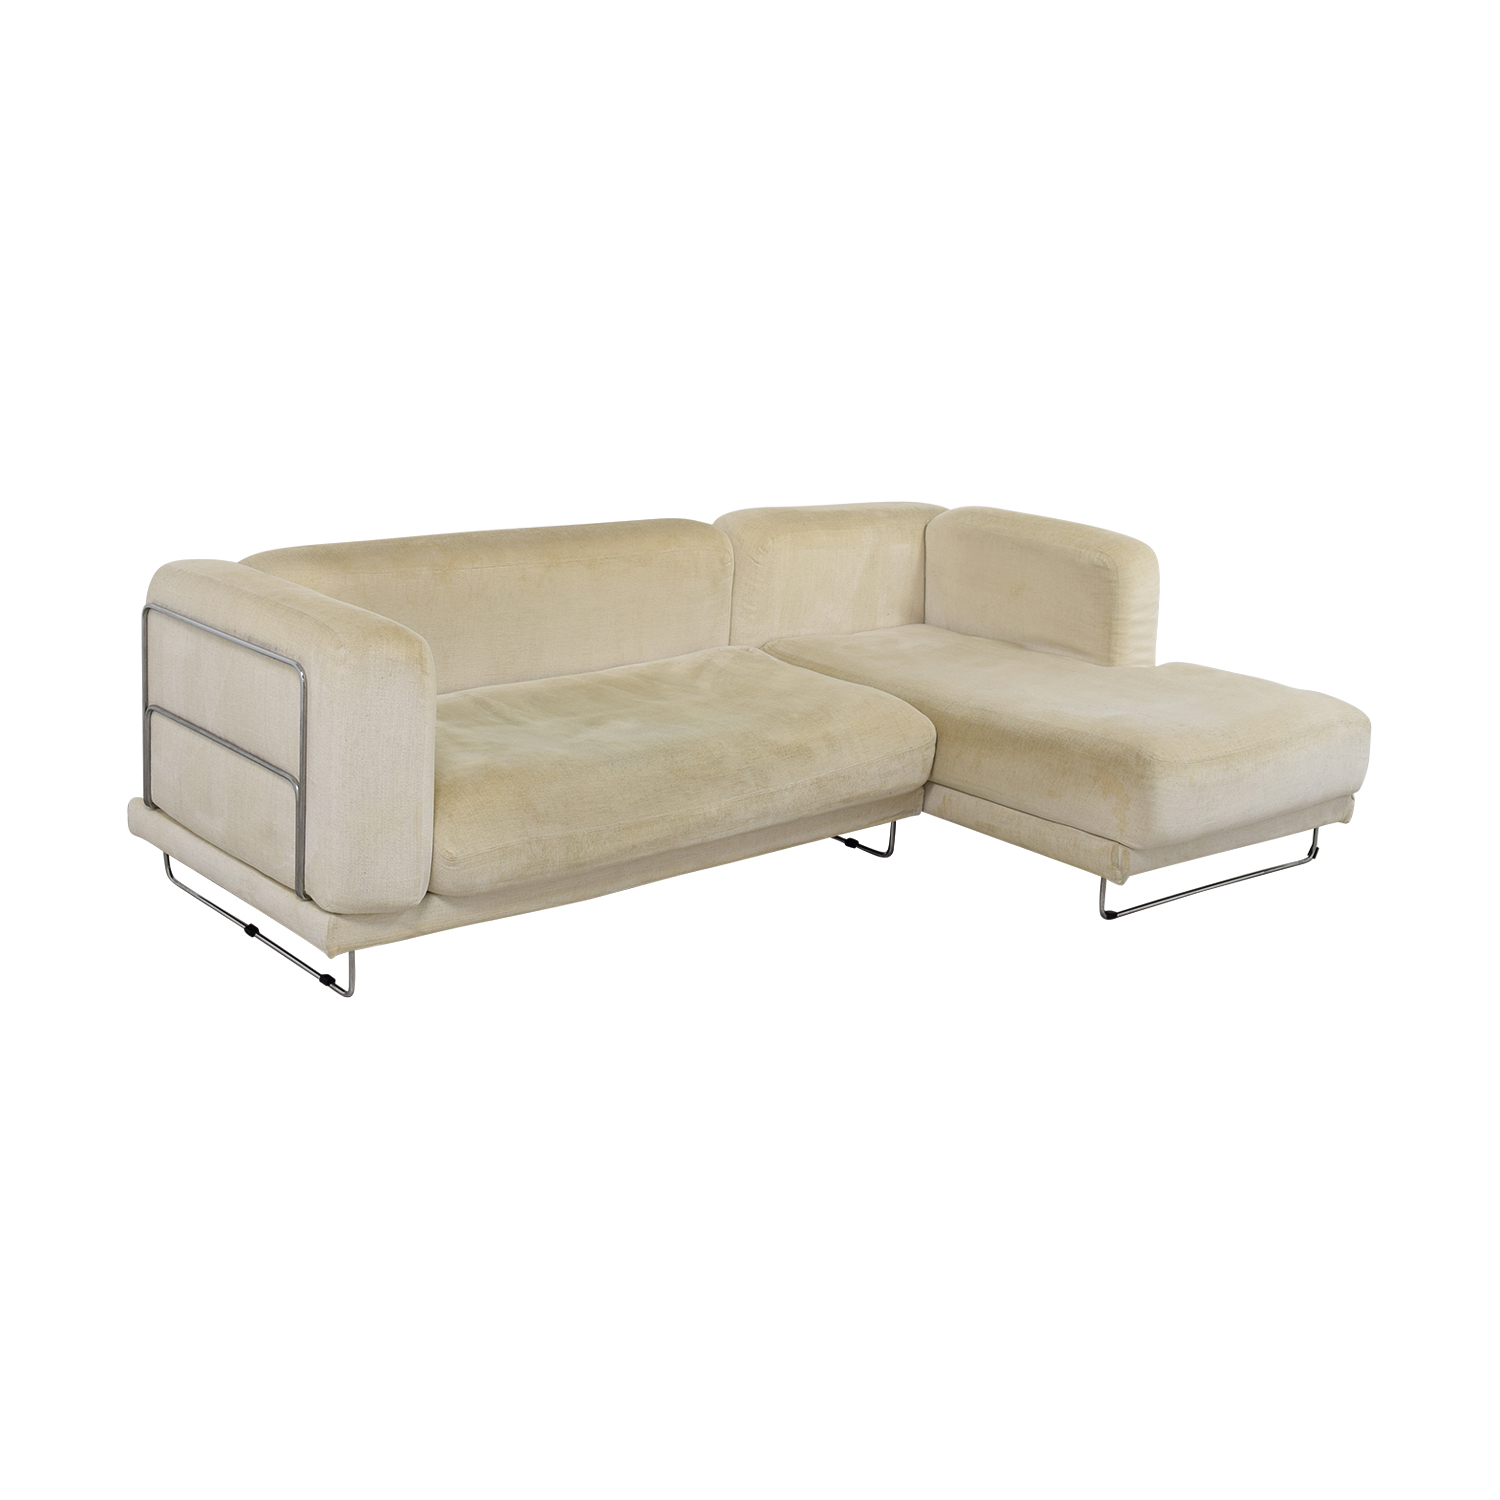 82 off ikea ikea white chaise sectional sofas for Ikea chaise bercante